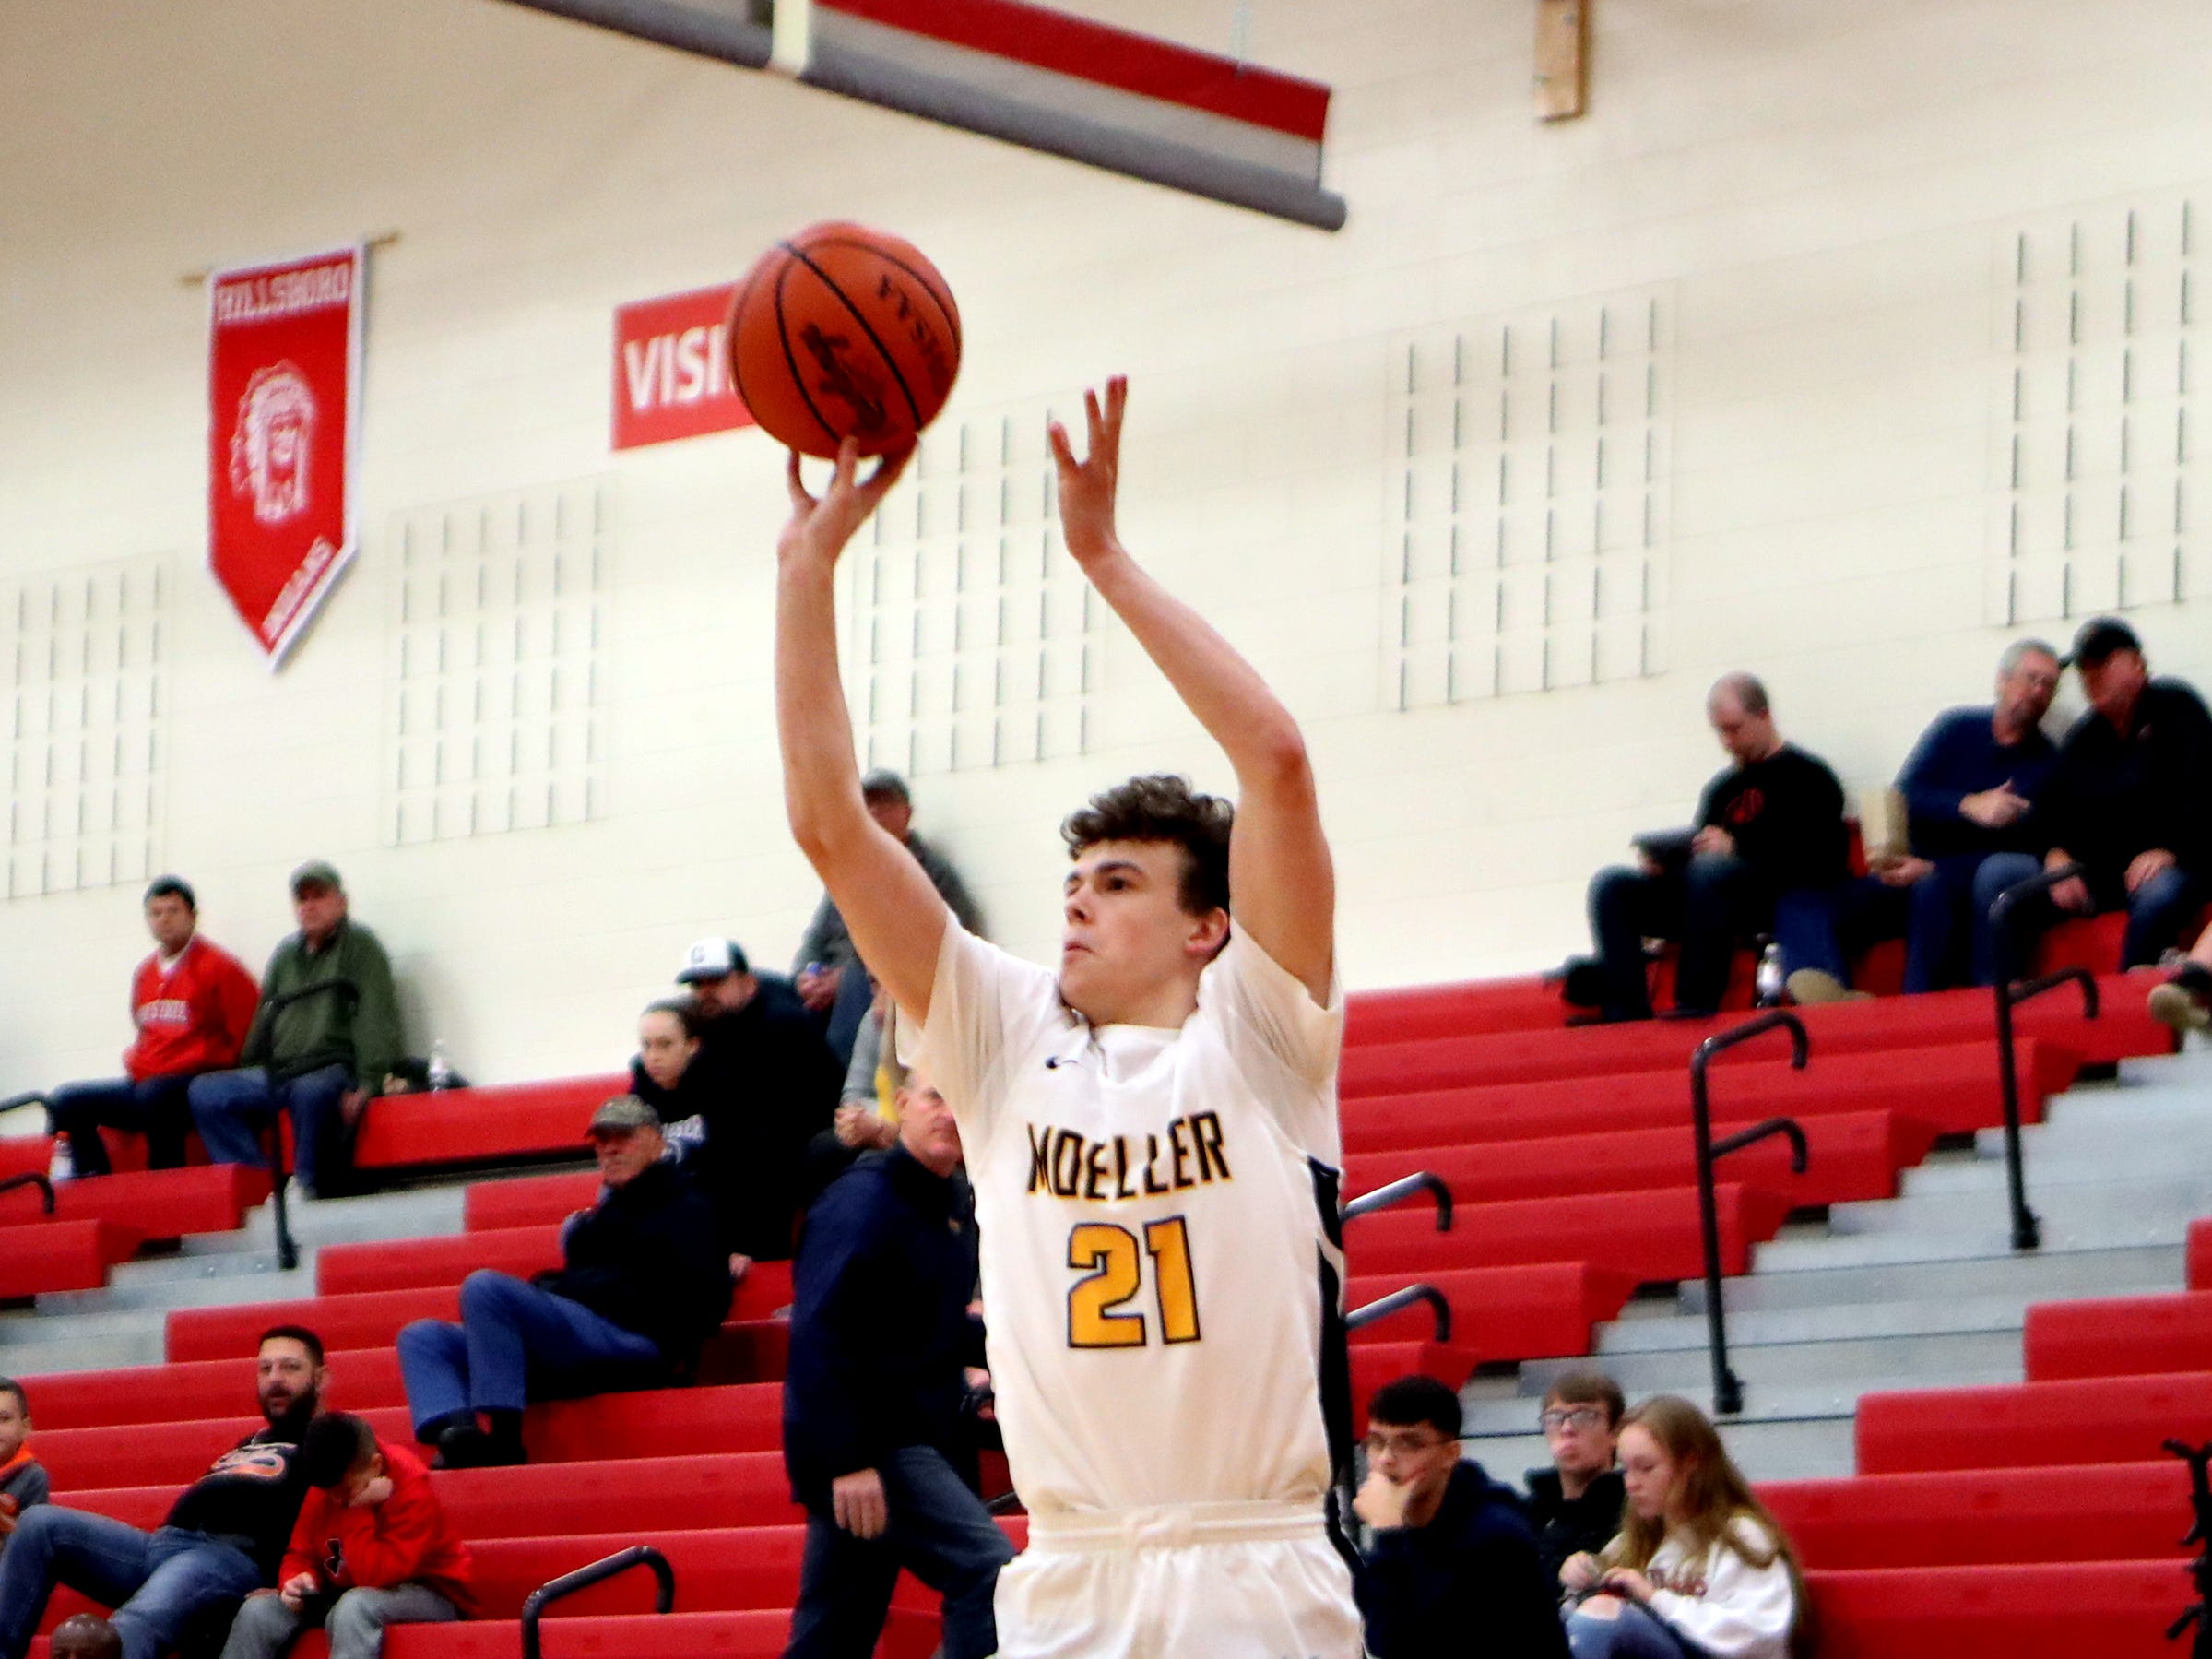 Moeller guard Brad Colbert knocks this shot down for a three pointer at the Ohio Valley Hoops Classic at Hillsboro High School. Moeller defeated Bryan Station 85-42.